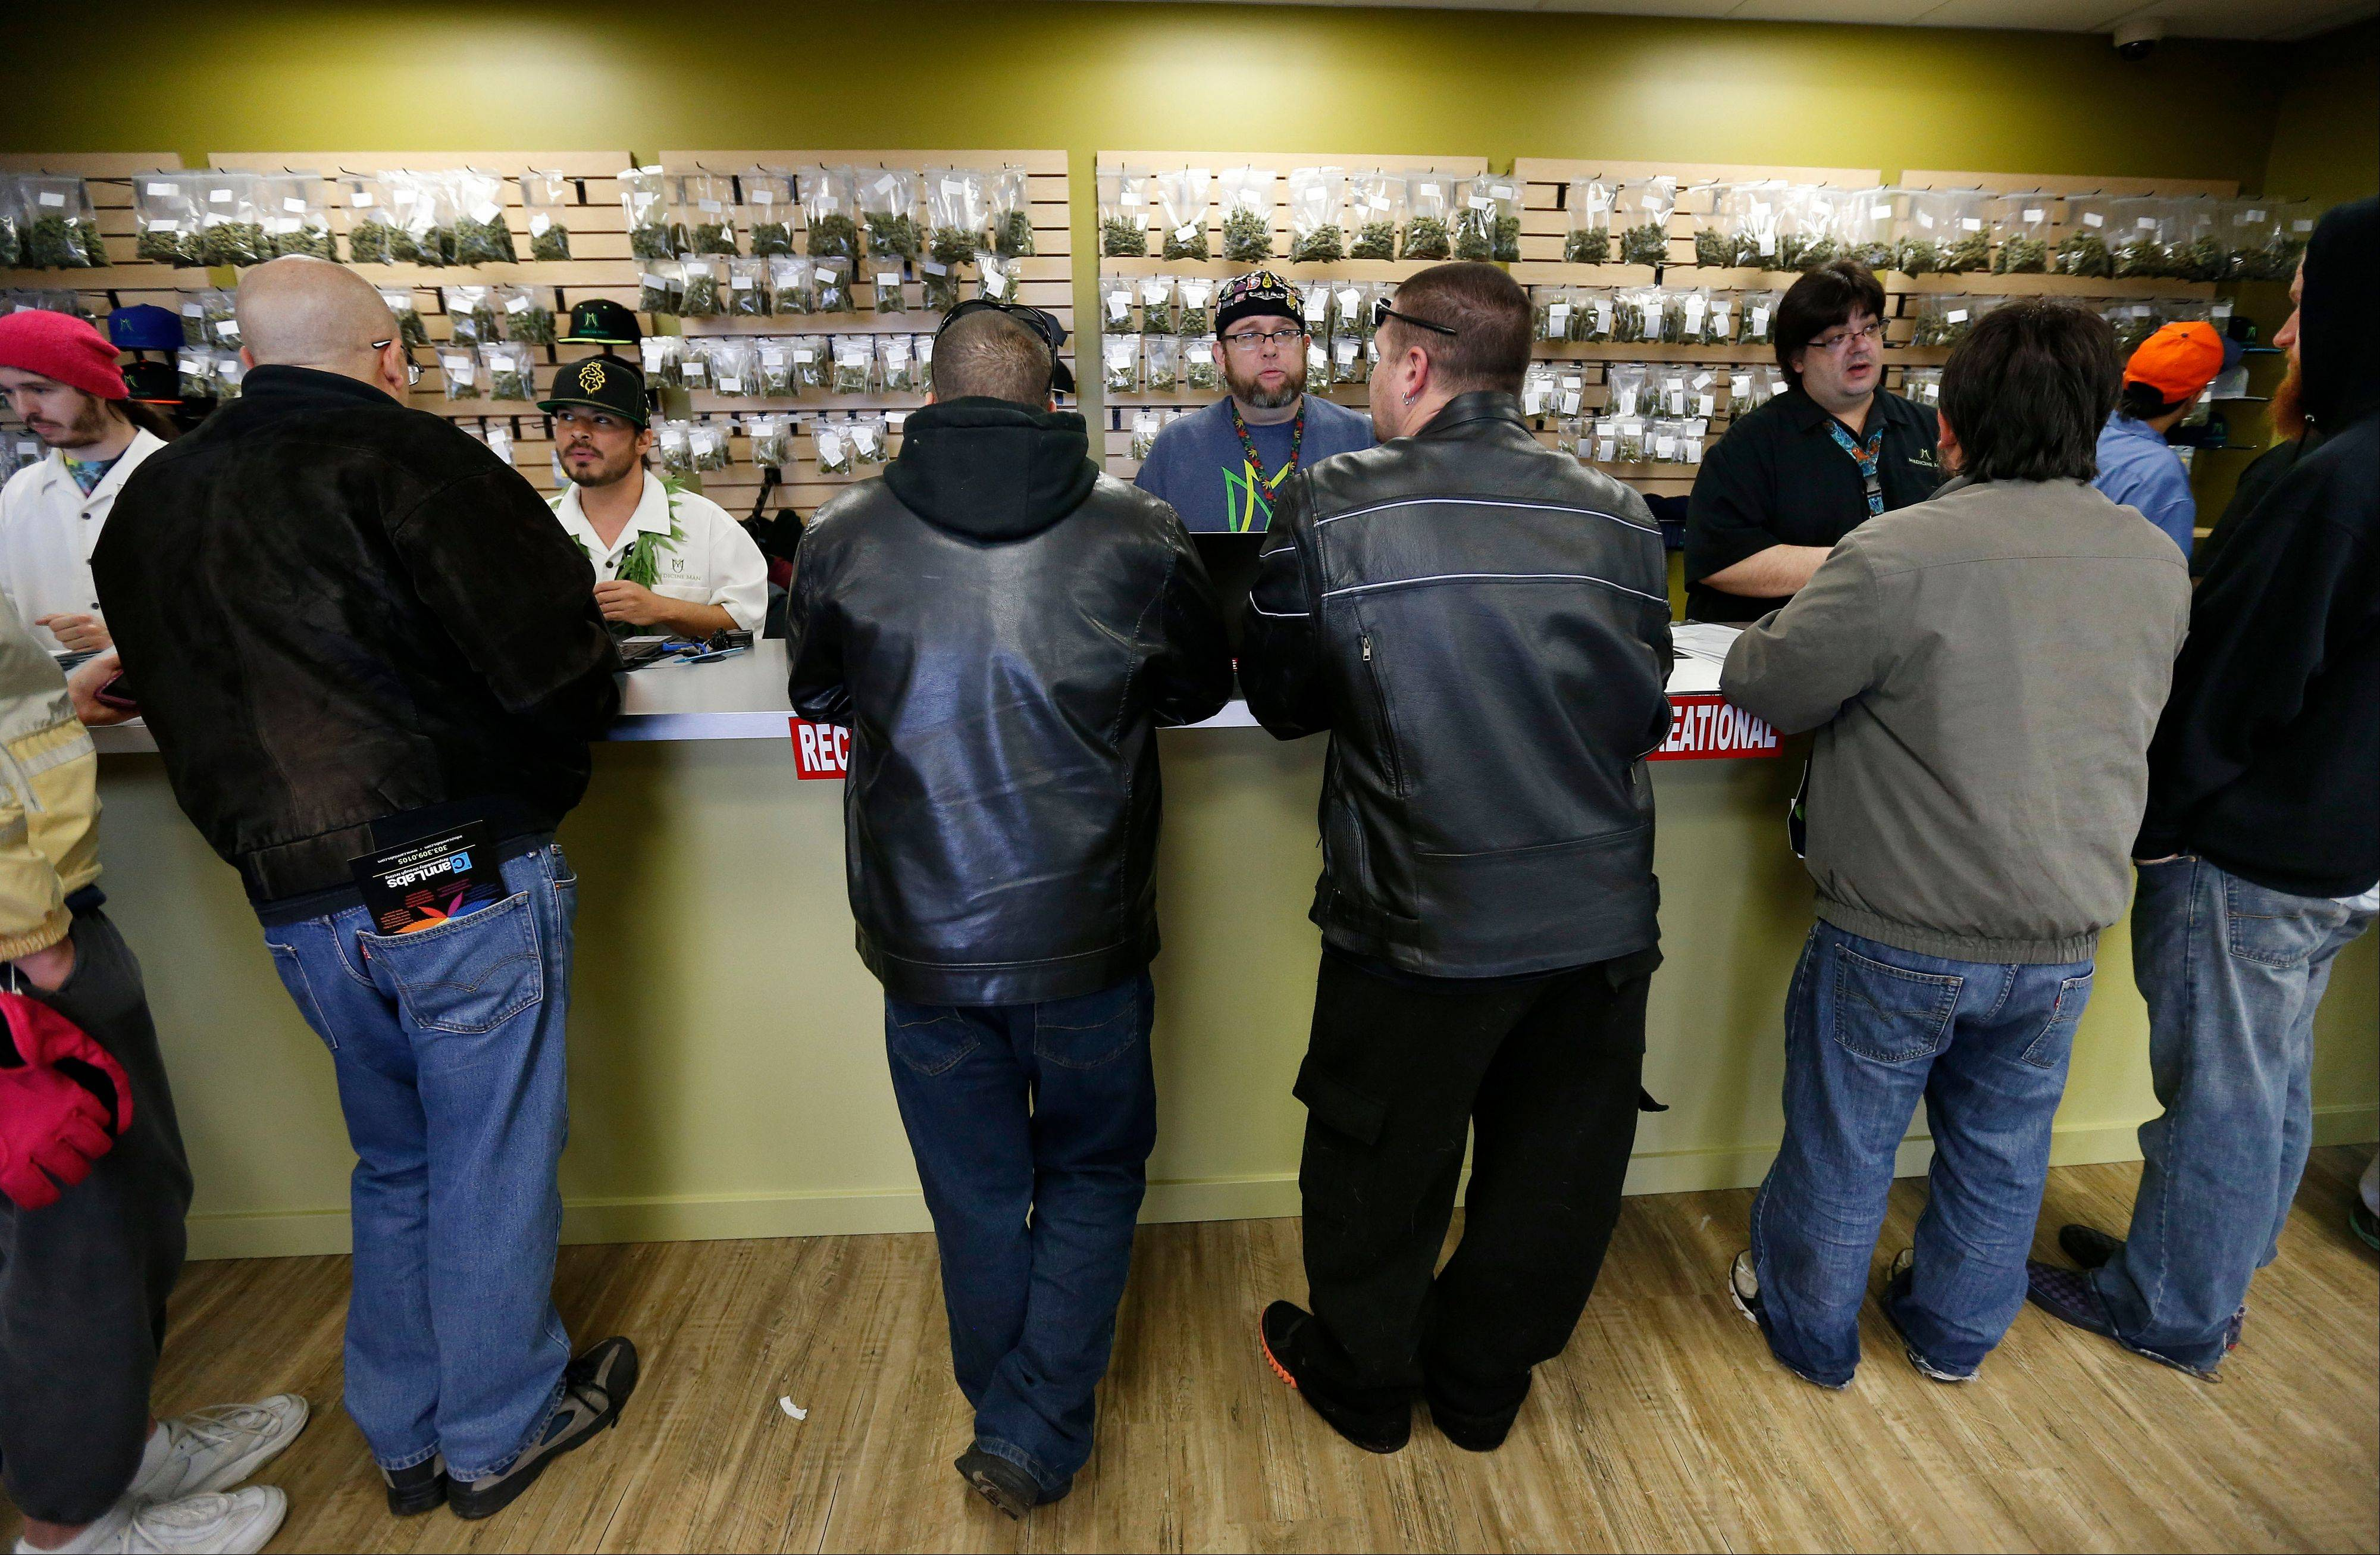 A group of marijuana activists want another pot vote in Colorado, to loosen restrictions on who can have it. A proposed ballot measure up for state review Wednesday Jan. 14, 2014 would end criminal penalties for cannabis possession.